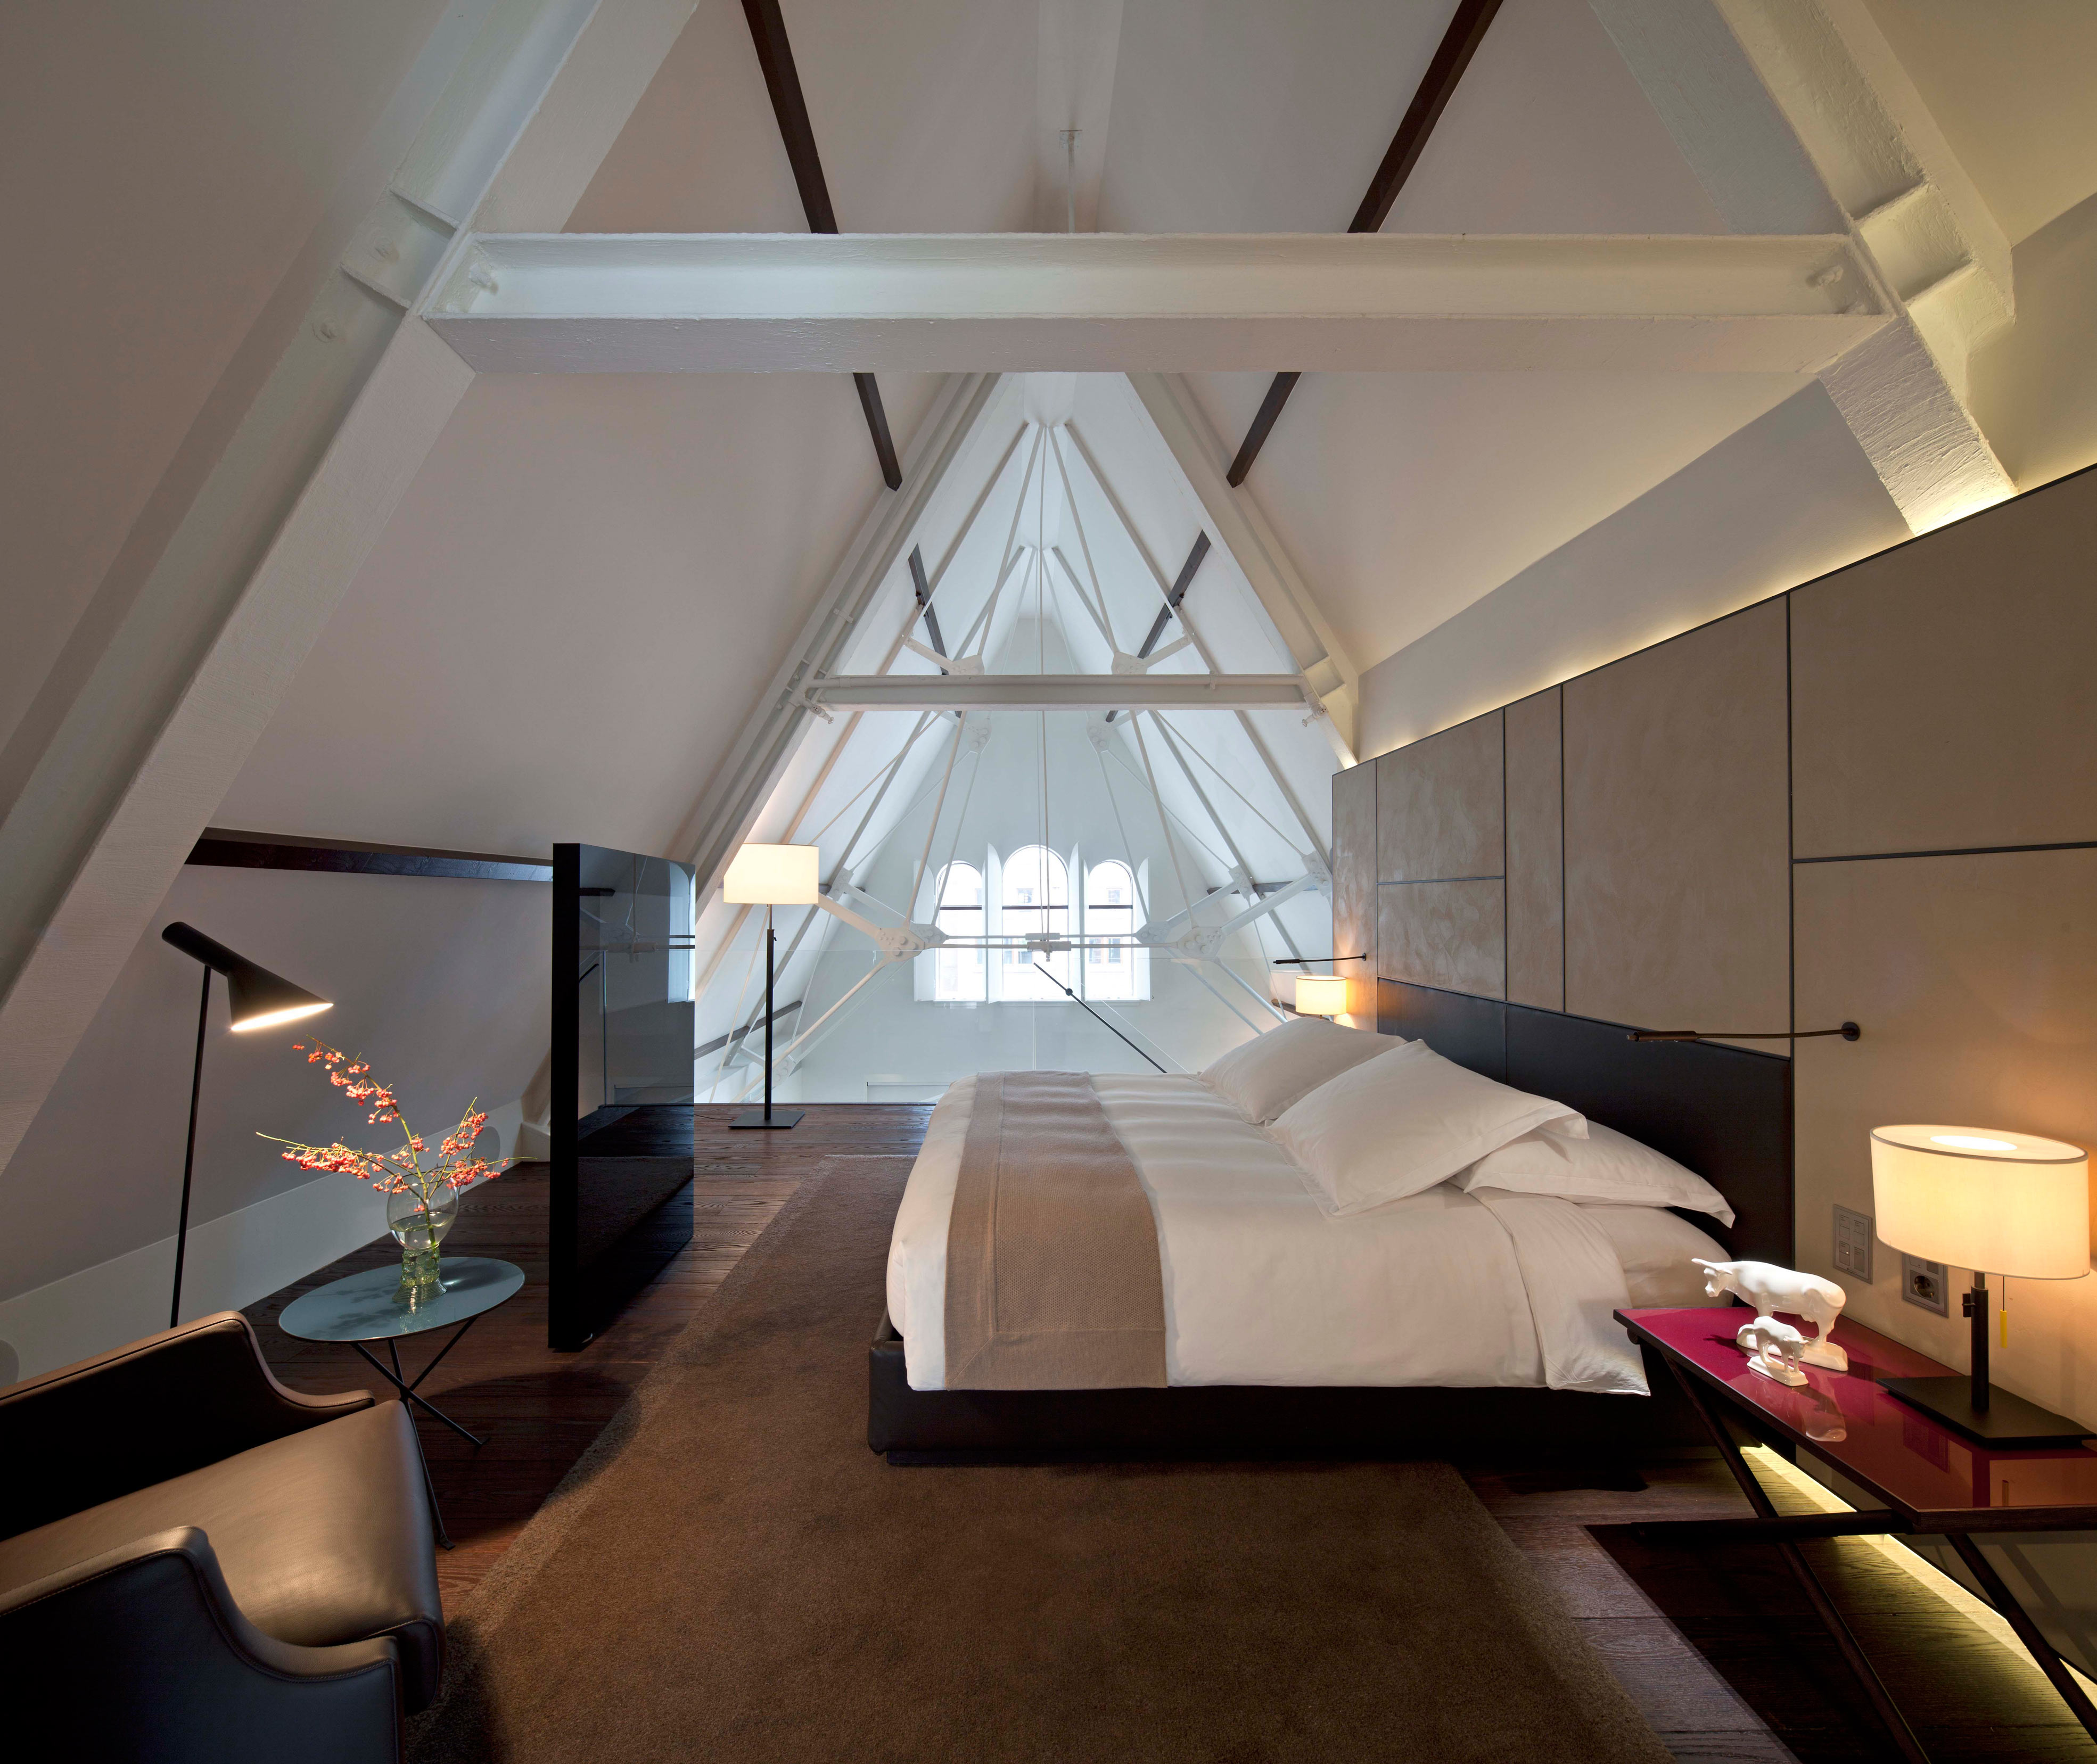 The I Heart Amsterdam suite at The Conservatorium Hotel